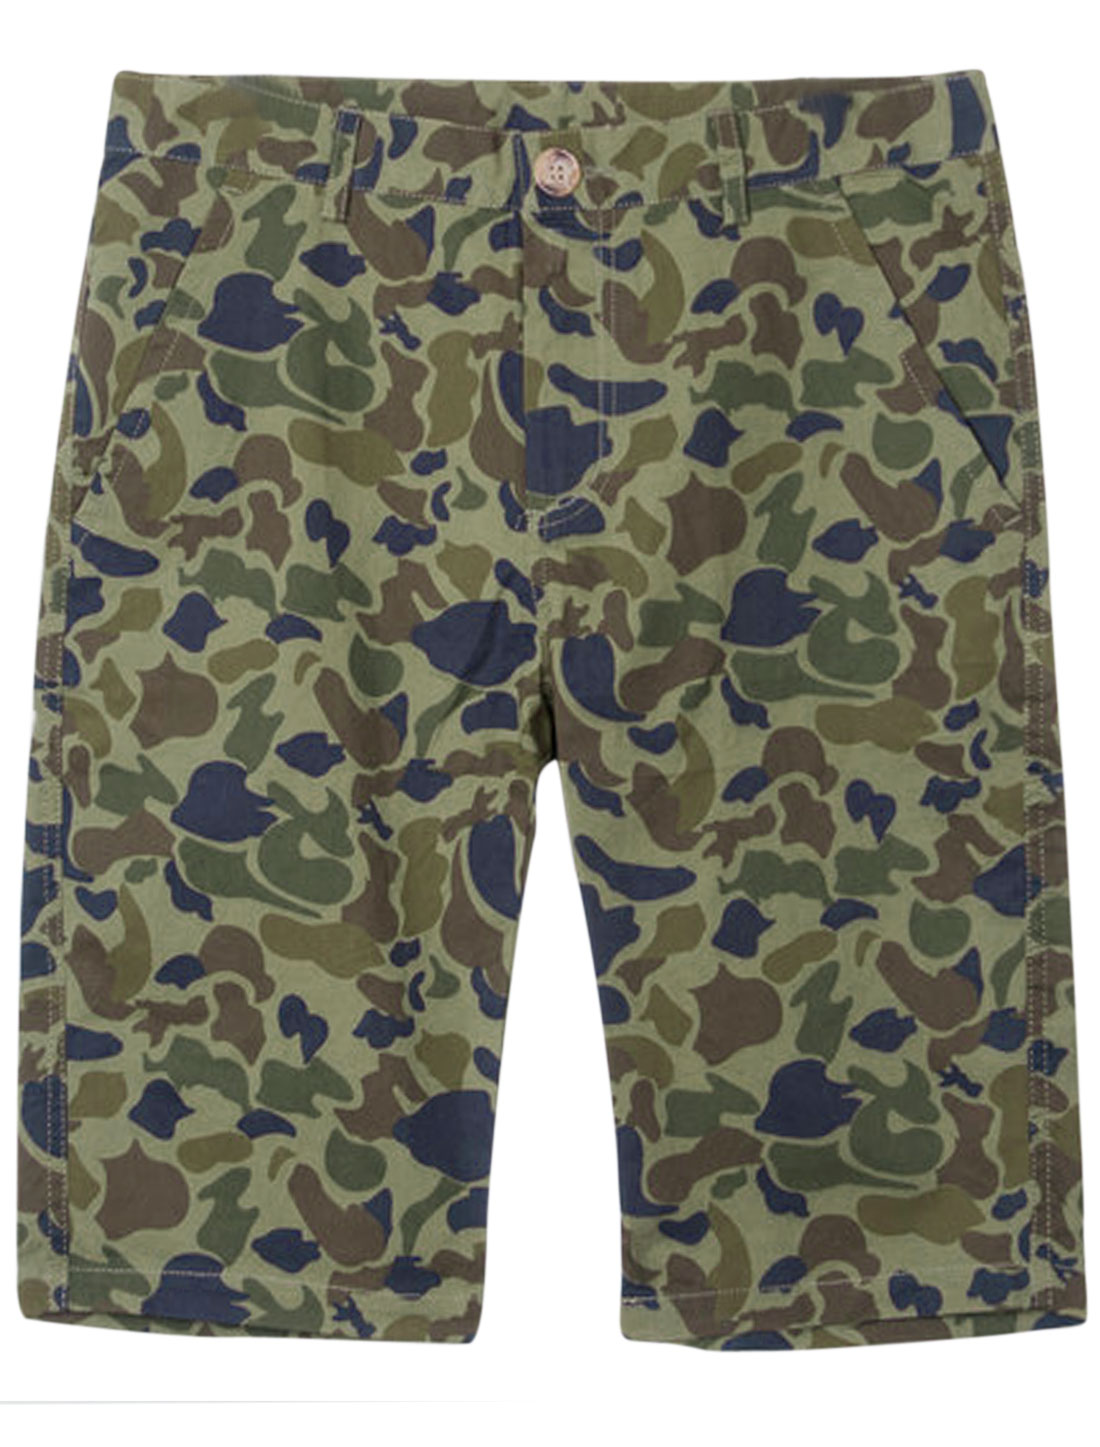 Men Four Pockets Camouflage Pattern Chic NEW Shorts Brown Army Green W28